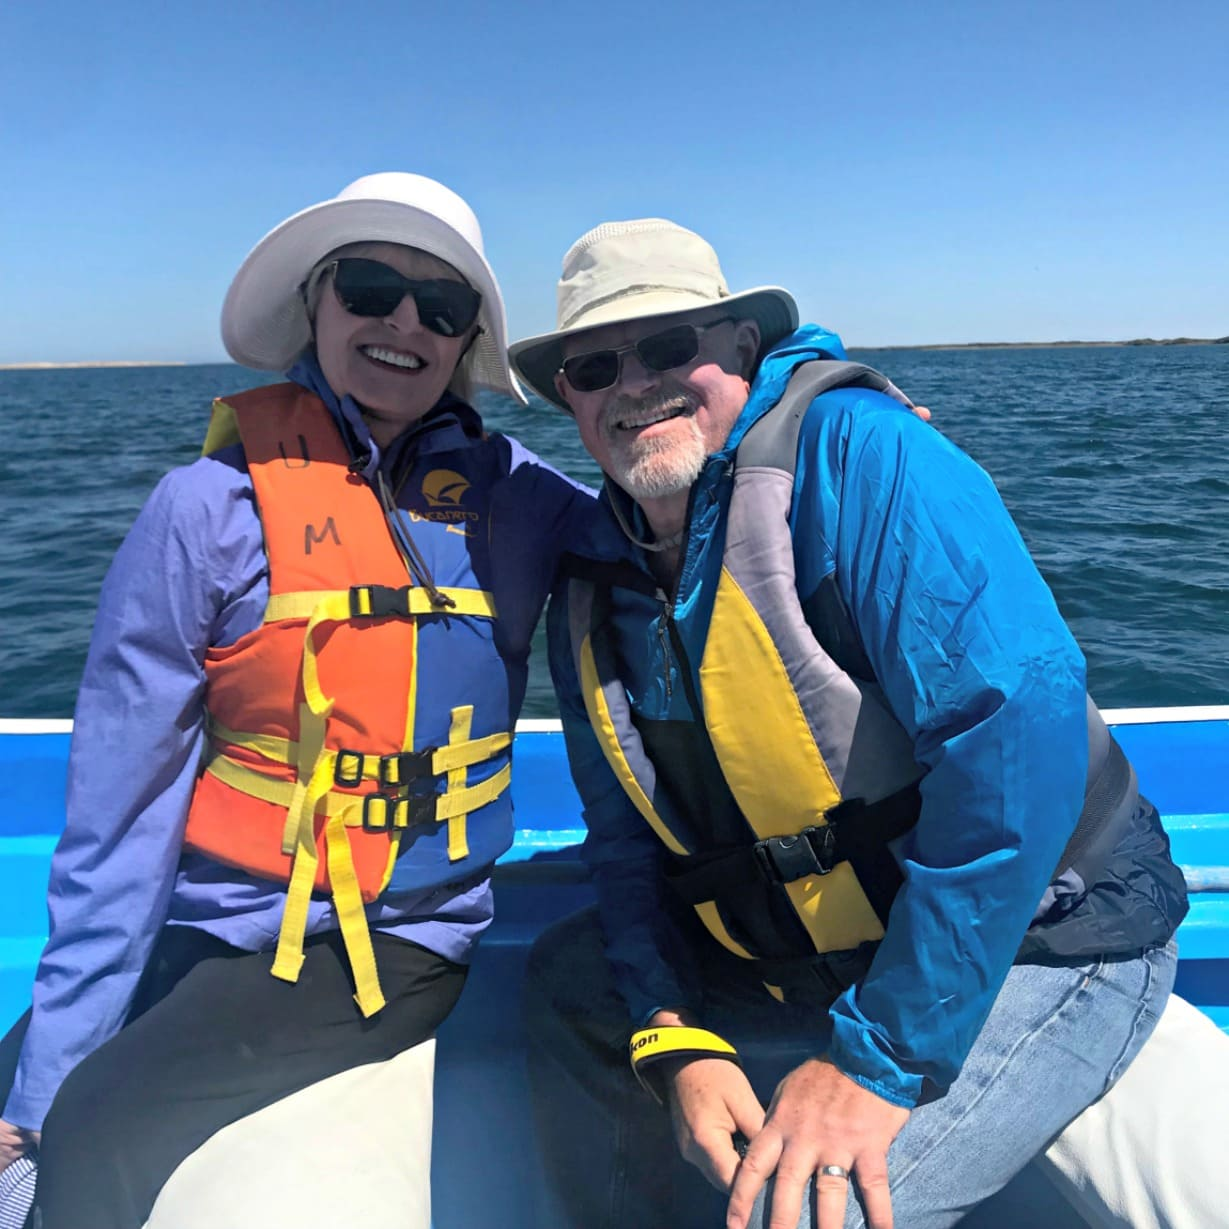 Jennifer of A Well Styled life and her brother whale watching in Baja Mexico